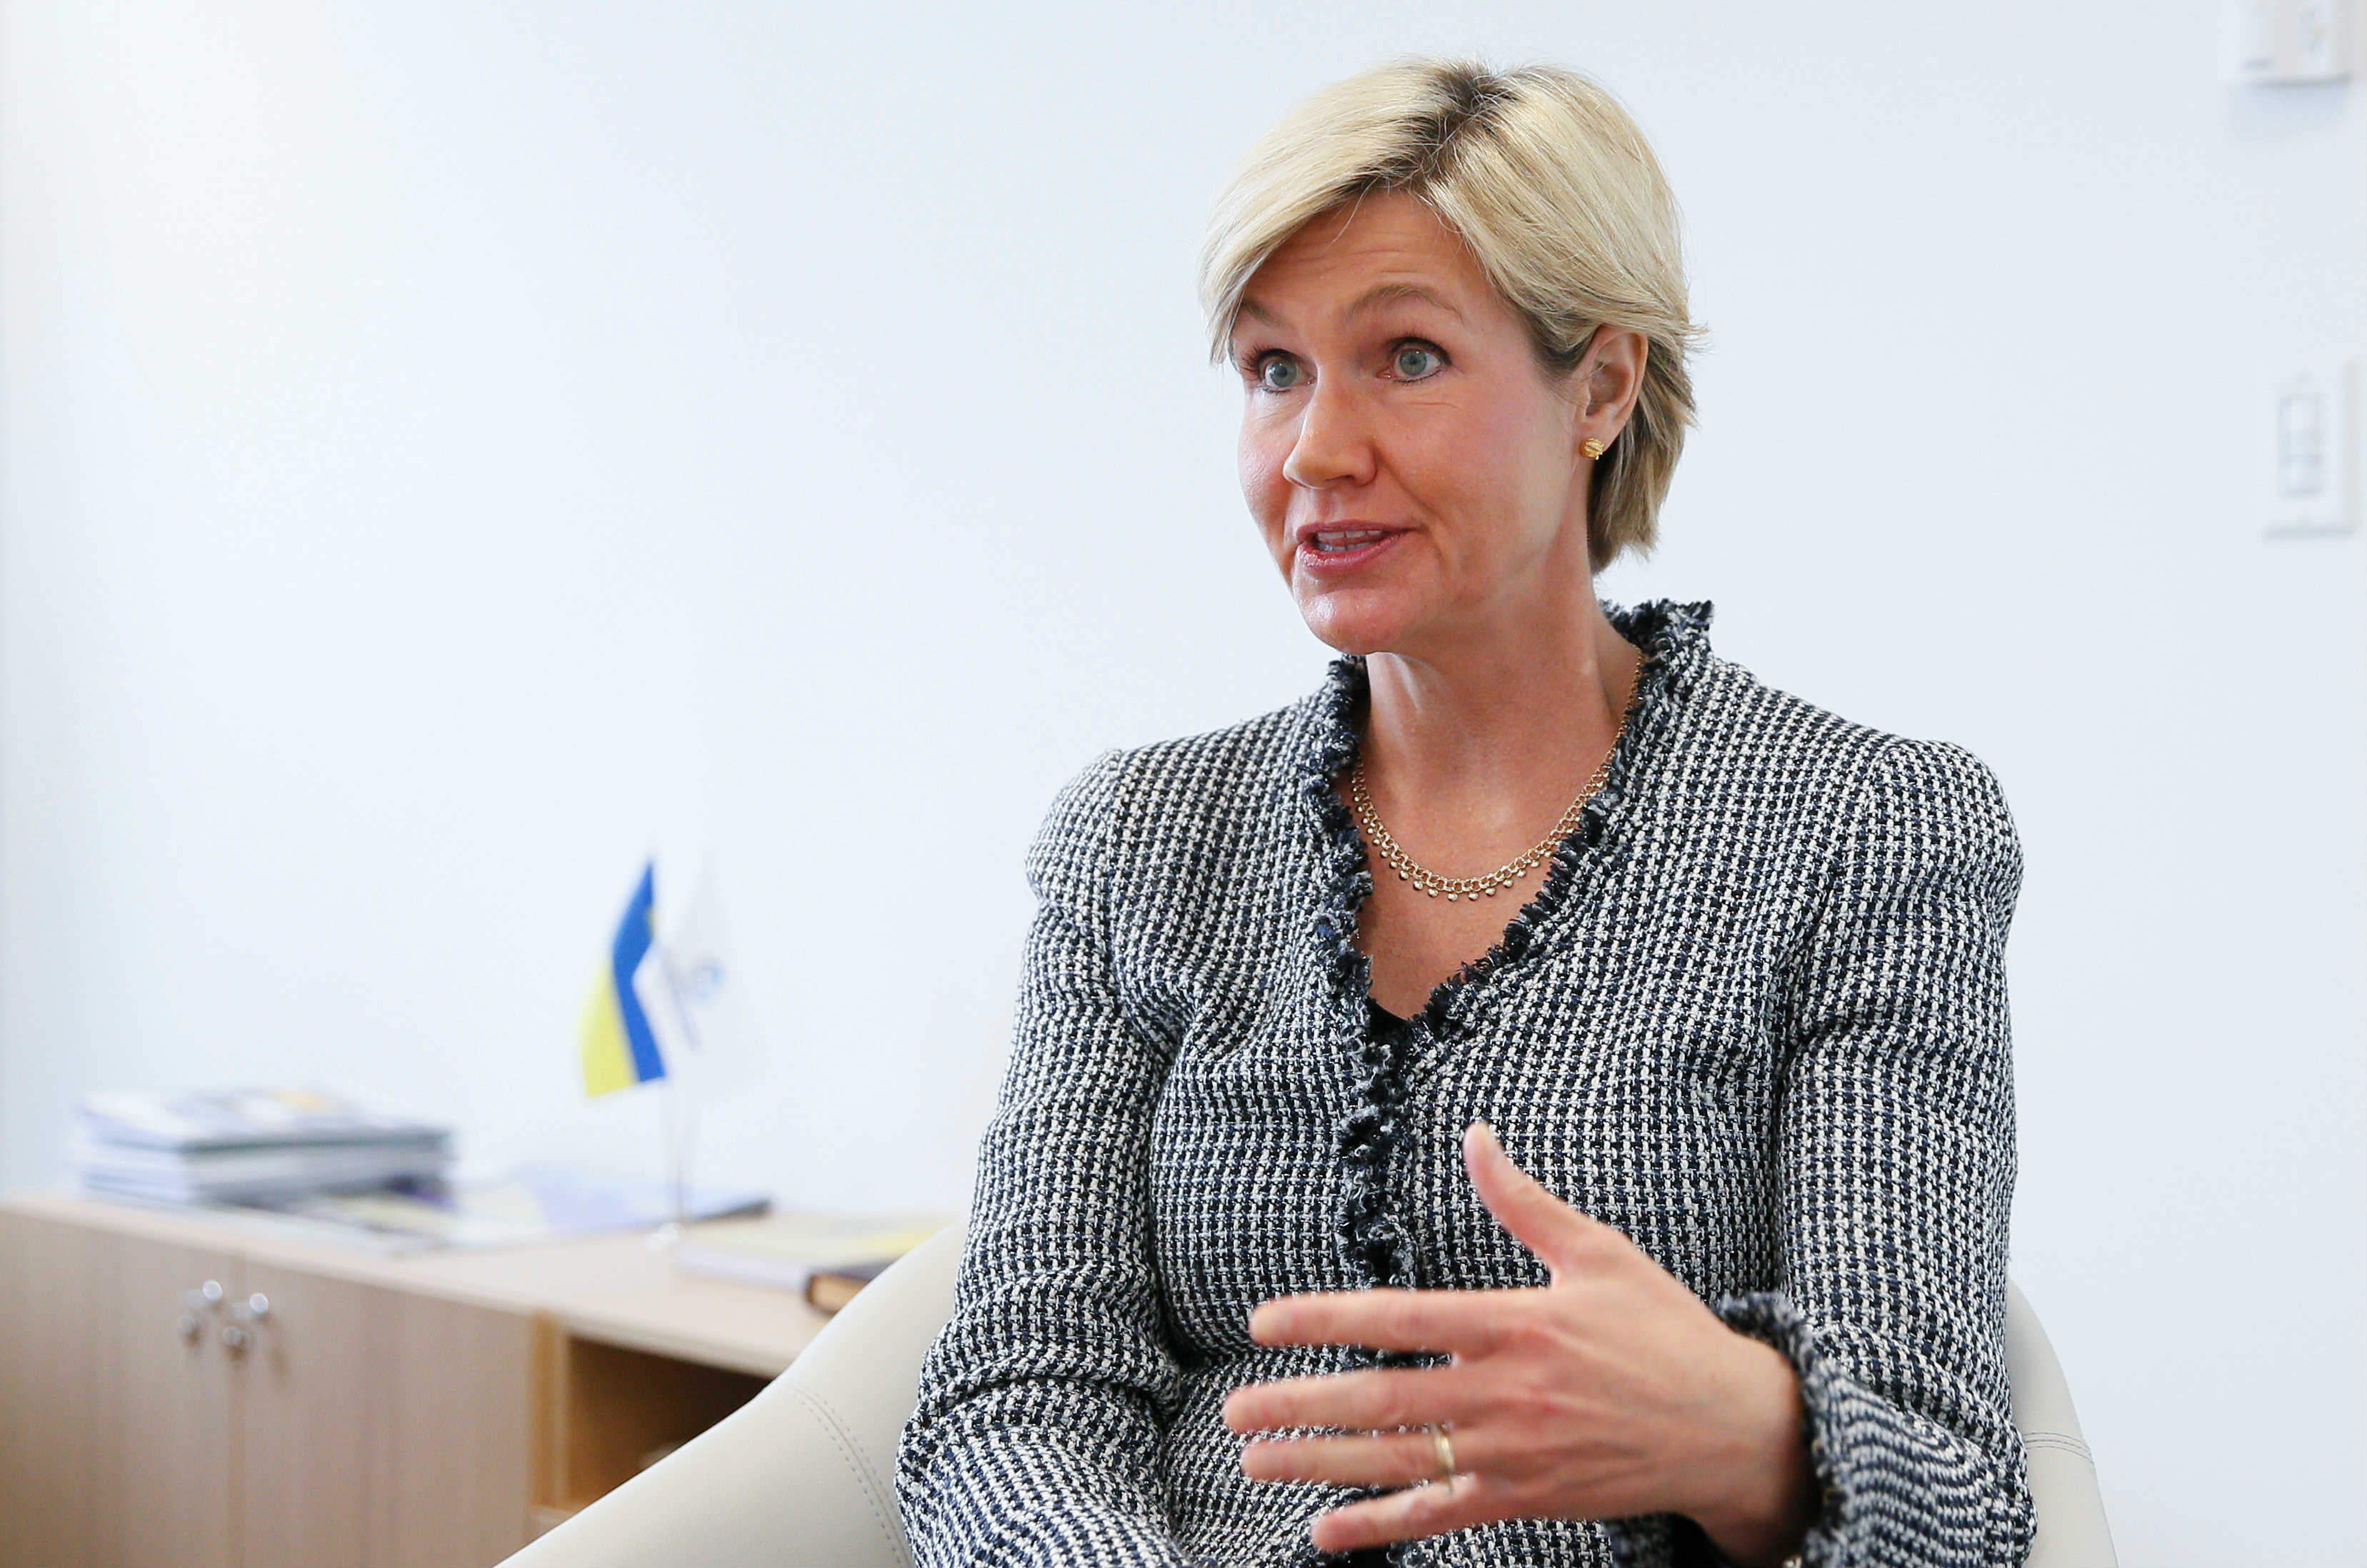 Q&A: How Can Ukraine Get a Better Grade on the World Bank's Ease of Doing Business Index?